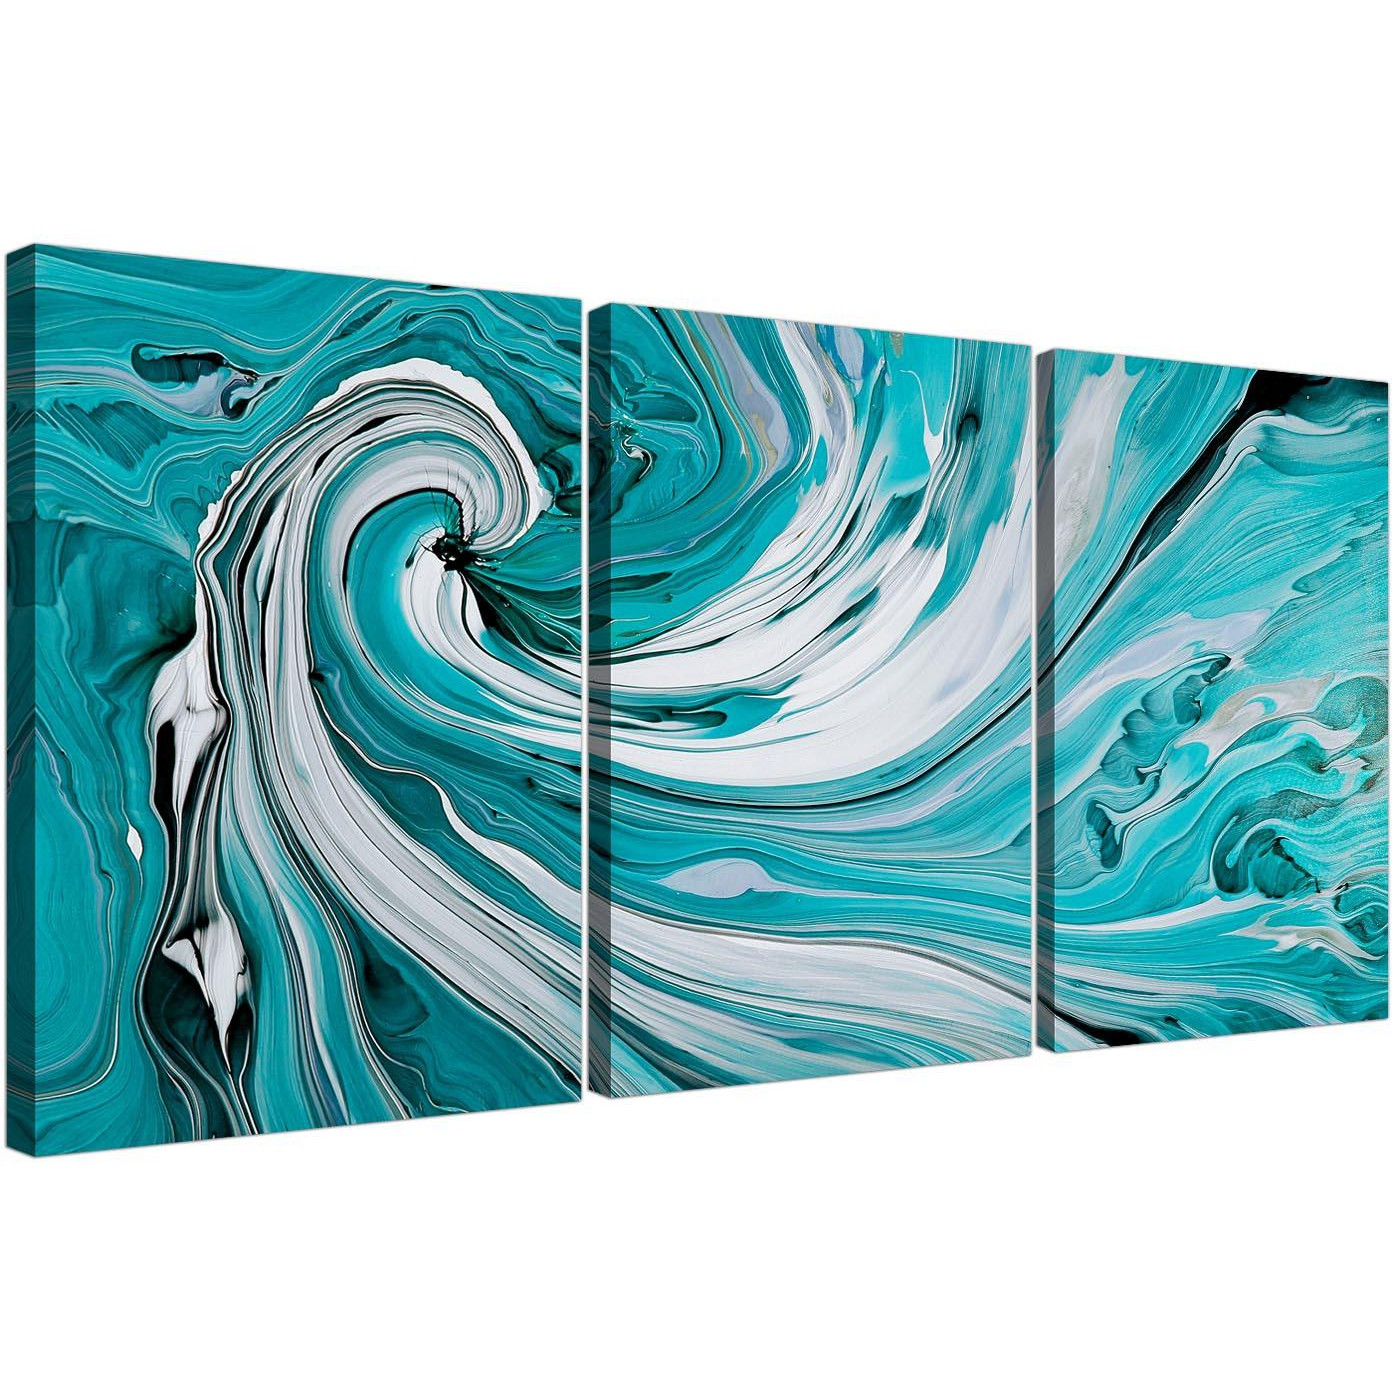 teal and white spiral swirl abstract canvas split 3 panel 125cm wide. Black Bedroom Furniture Sets. Home Design Ideas